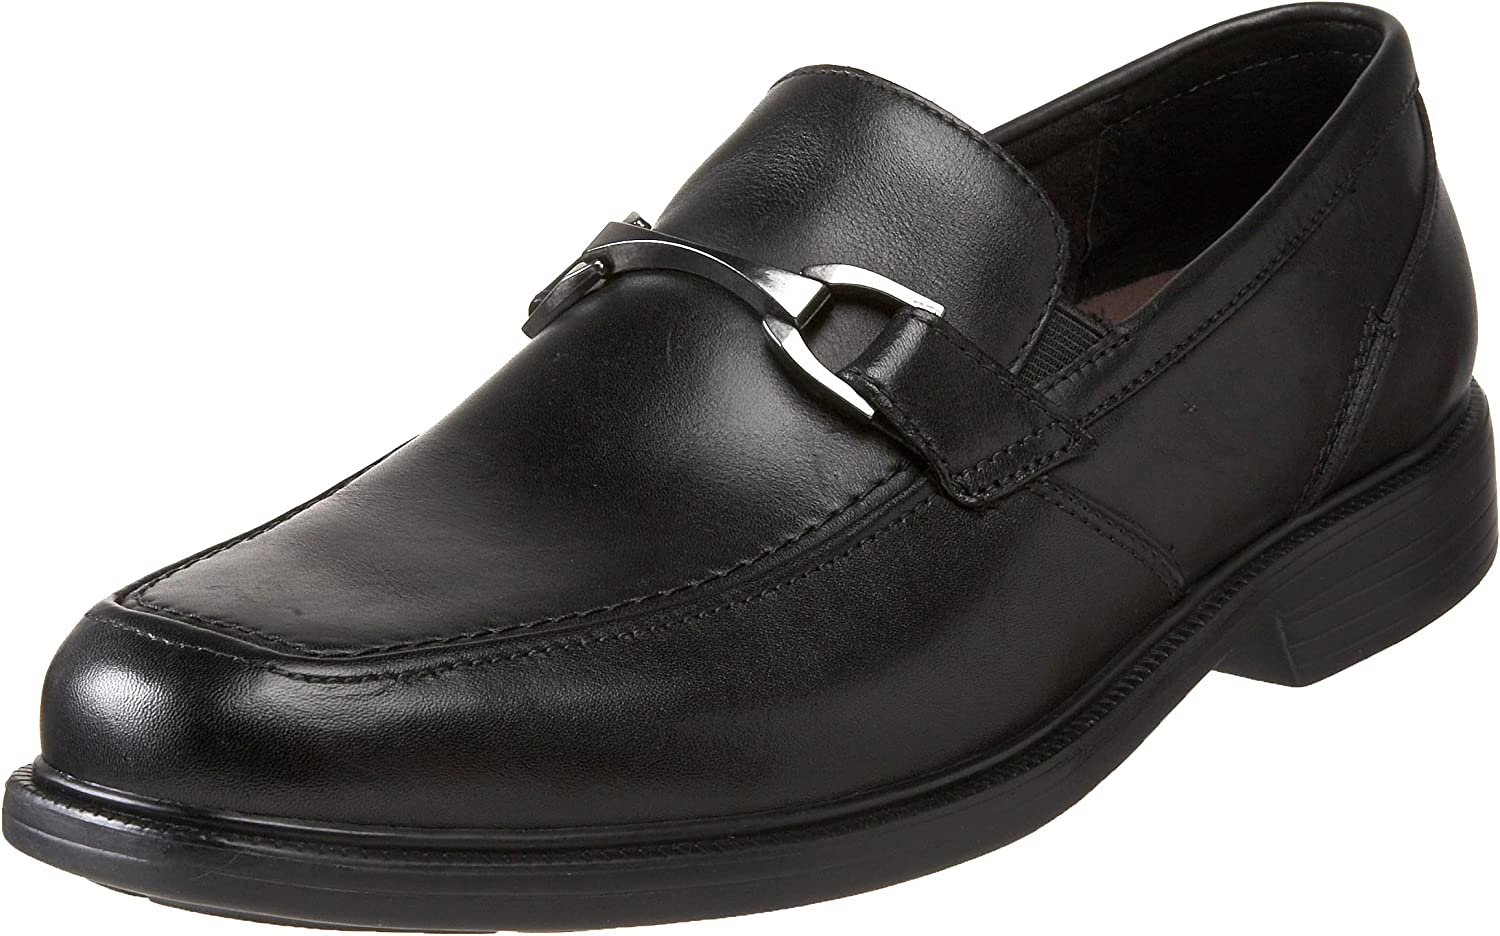 Bostonian Men's Laureate Slip-On Loafer